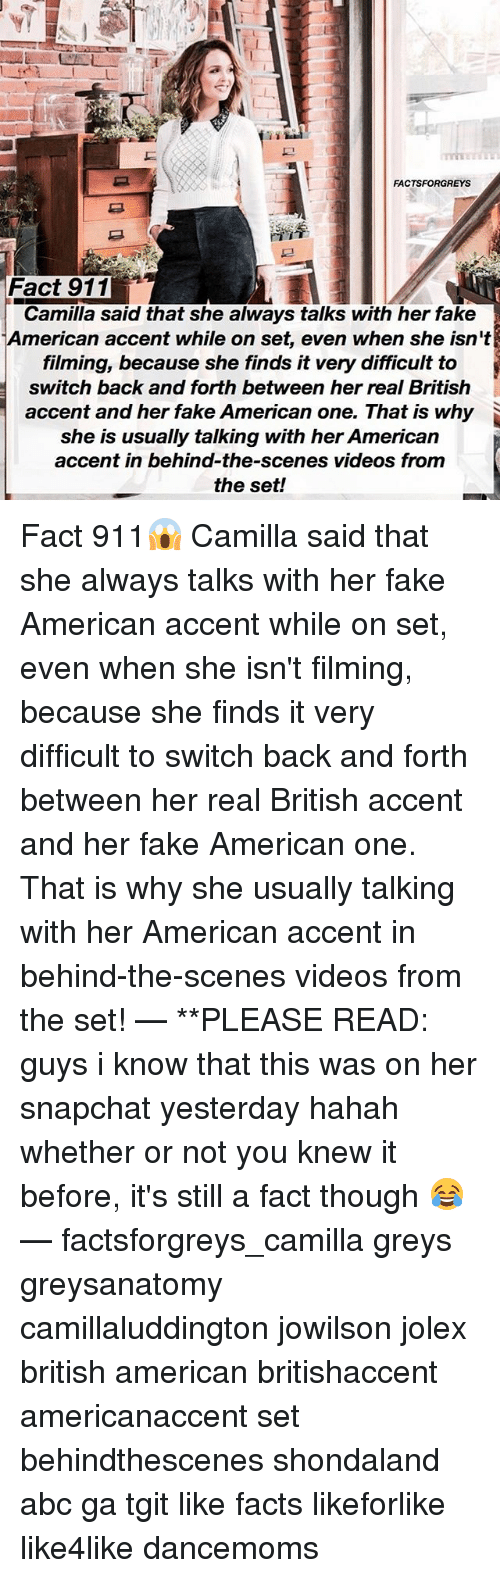 Abc, Facts, and Fake: FACTSFORGREYS  Fact 911  Camilla said that she always talks with her fake  American accent while on set, even when she isnt  filming, because she finds it very difficult to  switch back and forth between her real British  accent and her fake American one. That is why  she is usually talking with her American  accent in behind-the-scenes videos from  the set! Fact 911😱 Camilla said that she always talks with her fake American accent while on set, even when she isn't filming, because she finds it very difficult to switch back and forth between her real British accent and her fake American one. That is why she usually talking with her American accent in behind-the-scenes videos from the set! — **PLEASE READ: guys i know that this was on her snapchat yesterday hahah whether or not you knew it before, it's still a fact though 😂 — factsforgreys_camilla greys greysanatomy camillaluddington jowilson jolex british american britishaccent americanaccent set behindthescenes shondaland abc ga tgit like facts likeforlike like4like dancemoms